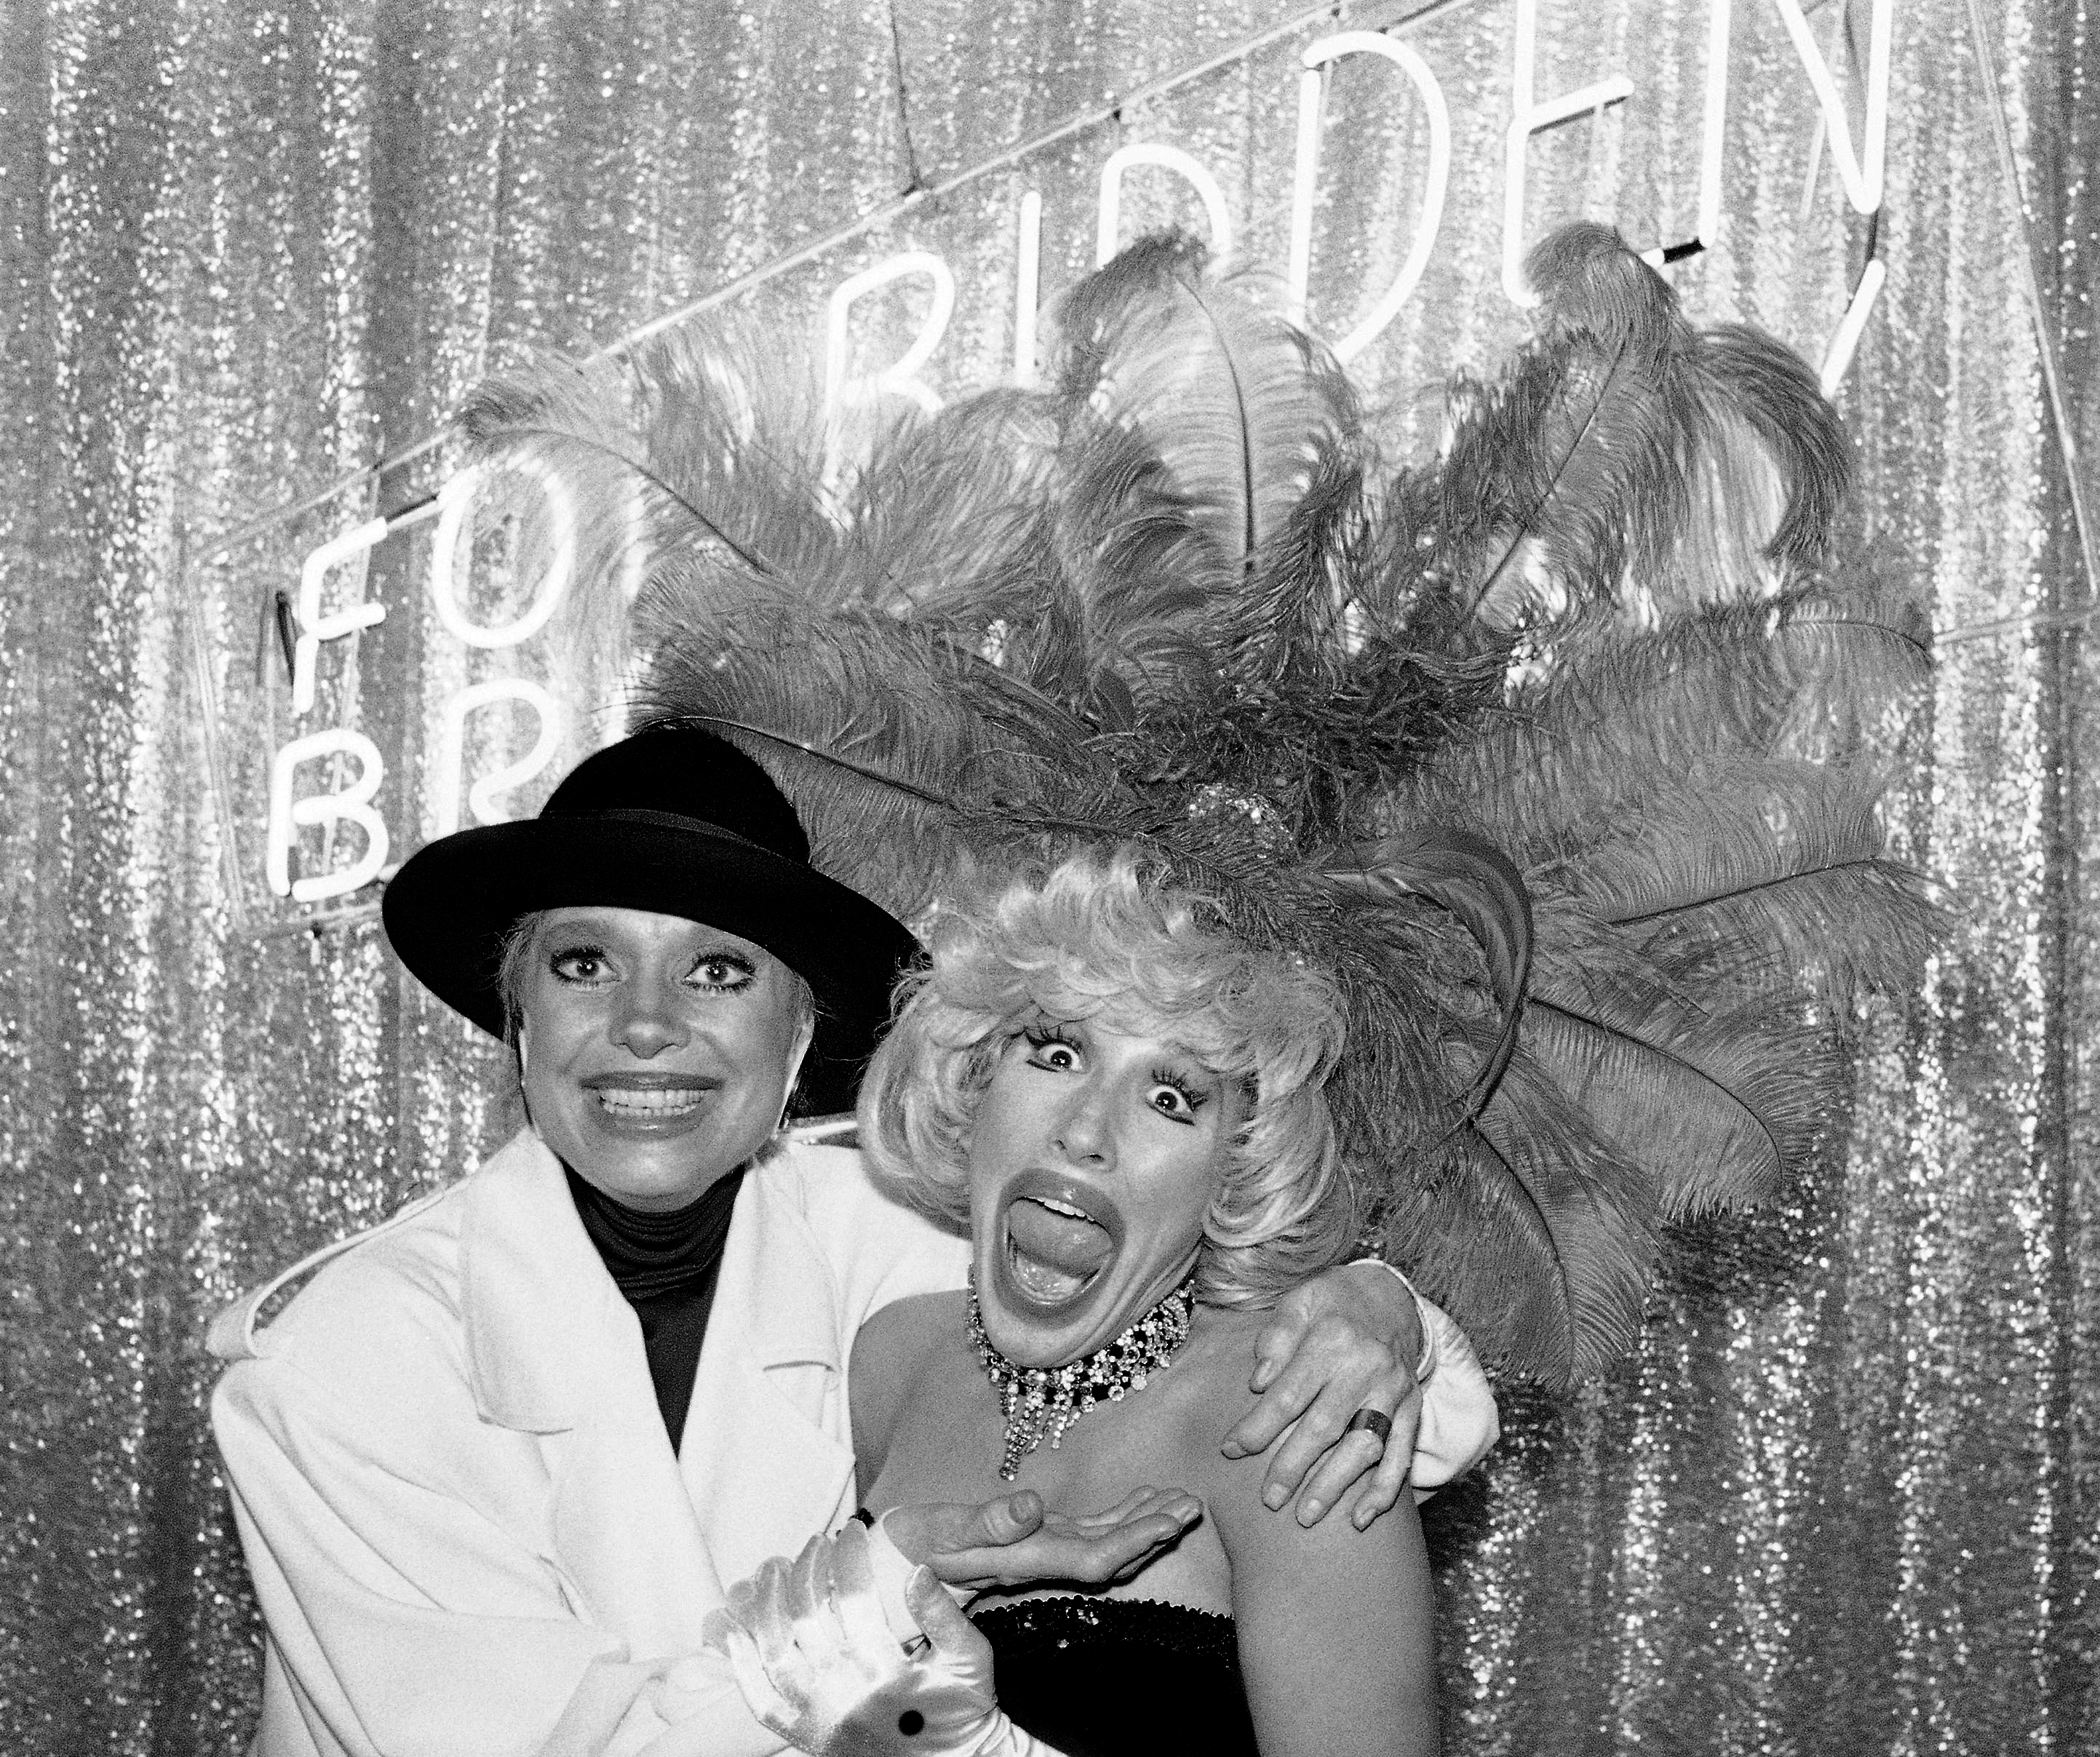 """Actress Carol Channing, left, poses with Toni DiBuono at a Boston cabaret where DiBuono stars in """"Forbidden Broadway 1986,"""" a parody of Channing and her music, Aug. 4, 1986. (Paul McAlpine/AP)"""